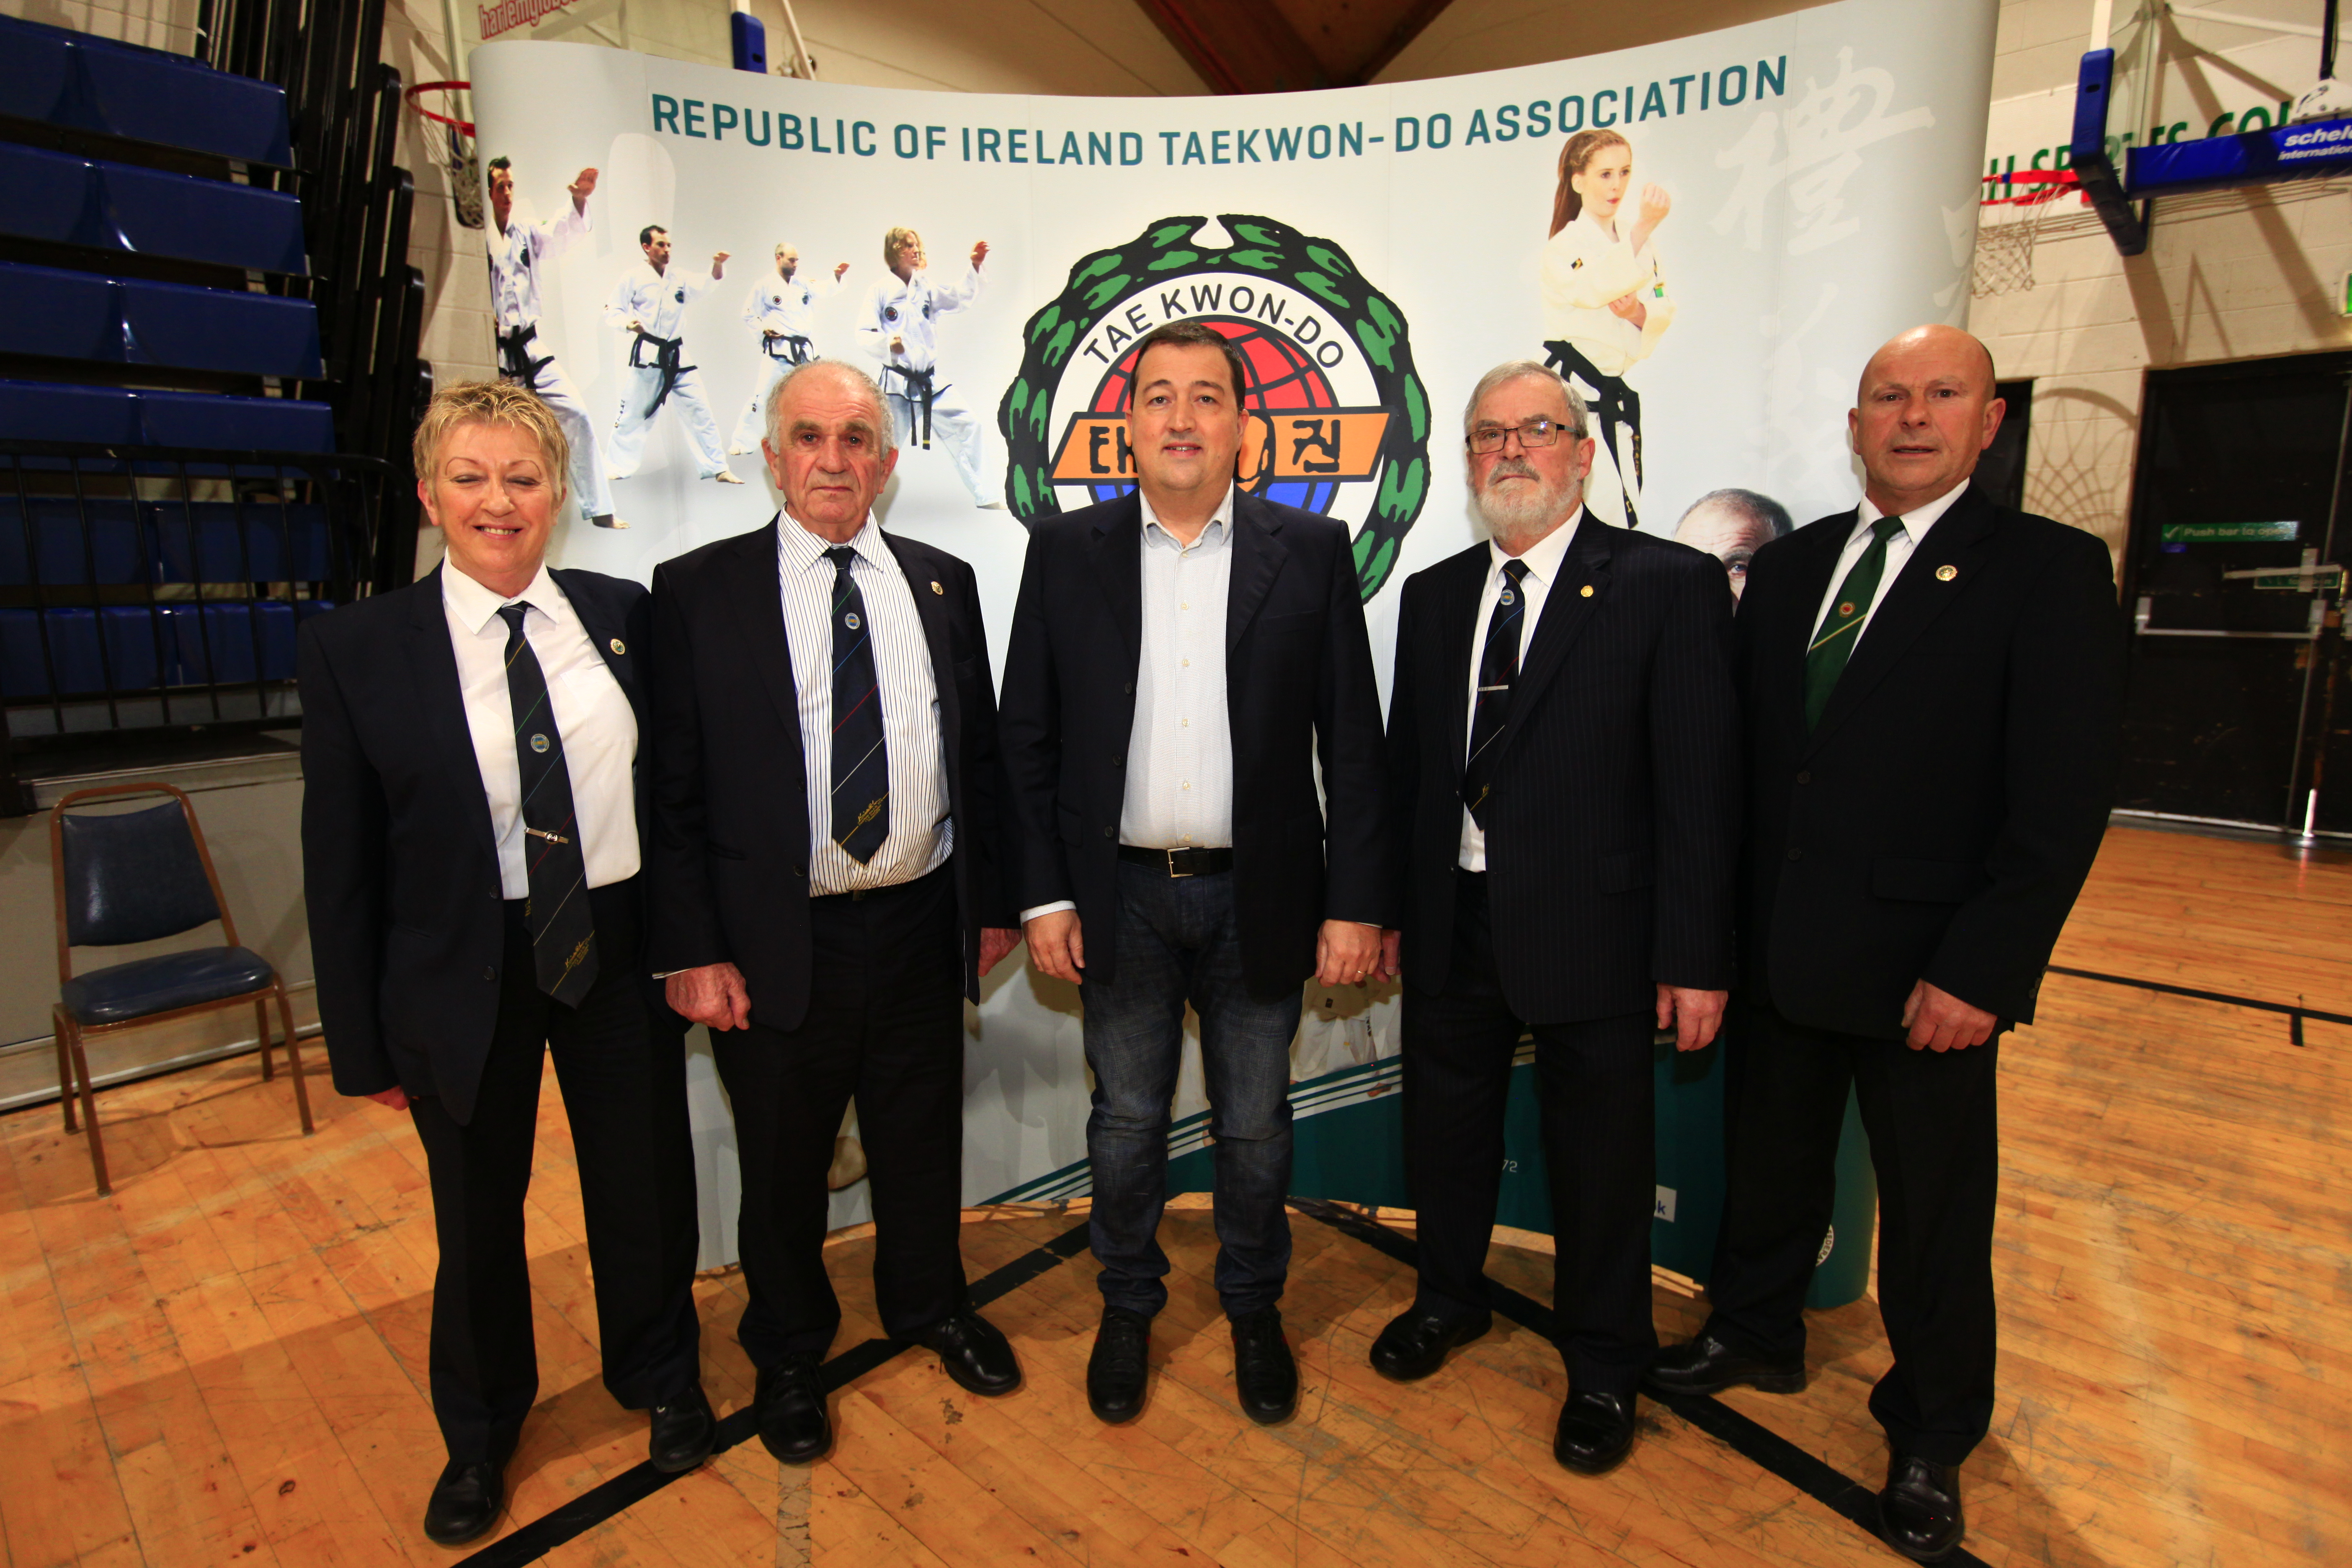 Left to right. Master Valerie Keane, Grandmaster Robert Howard, Hanley Energy Co-founder & Managing Director Dennis Nordon, Grandmaster Anthony Phelan, Master Francis Barrett